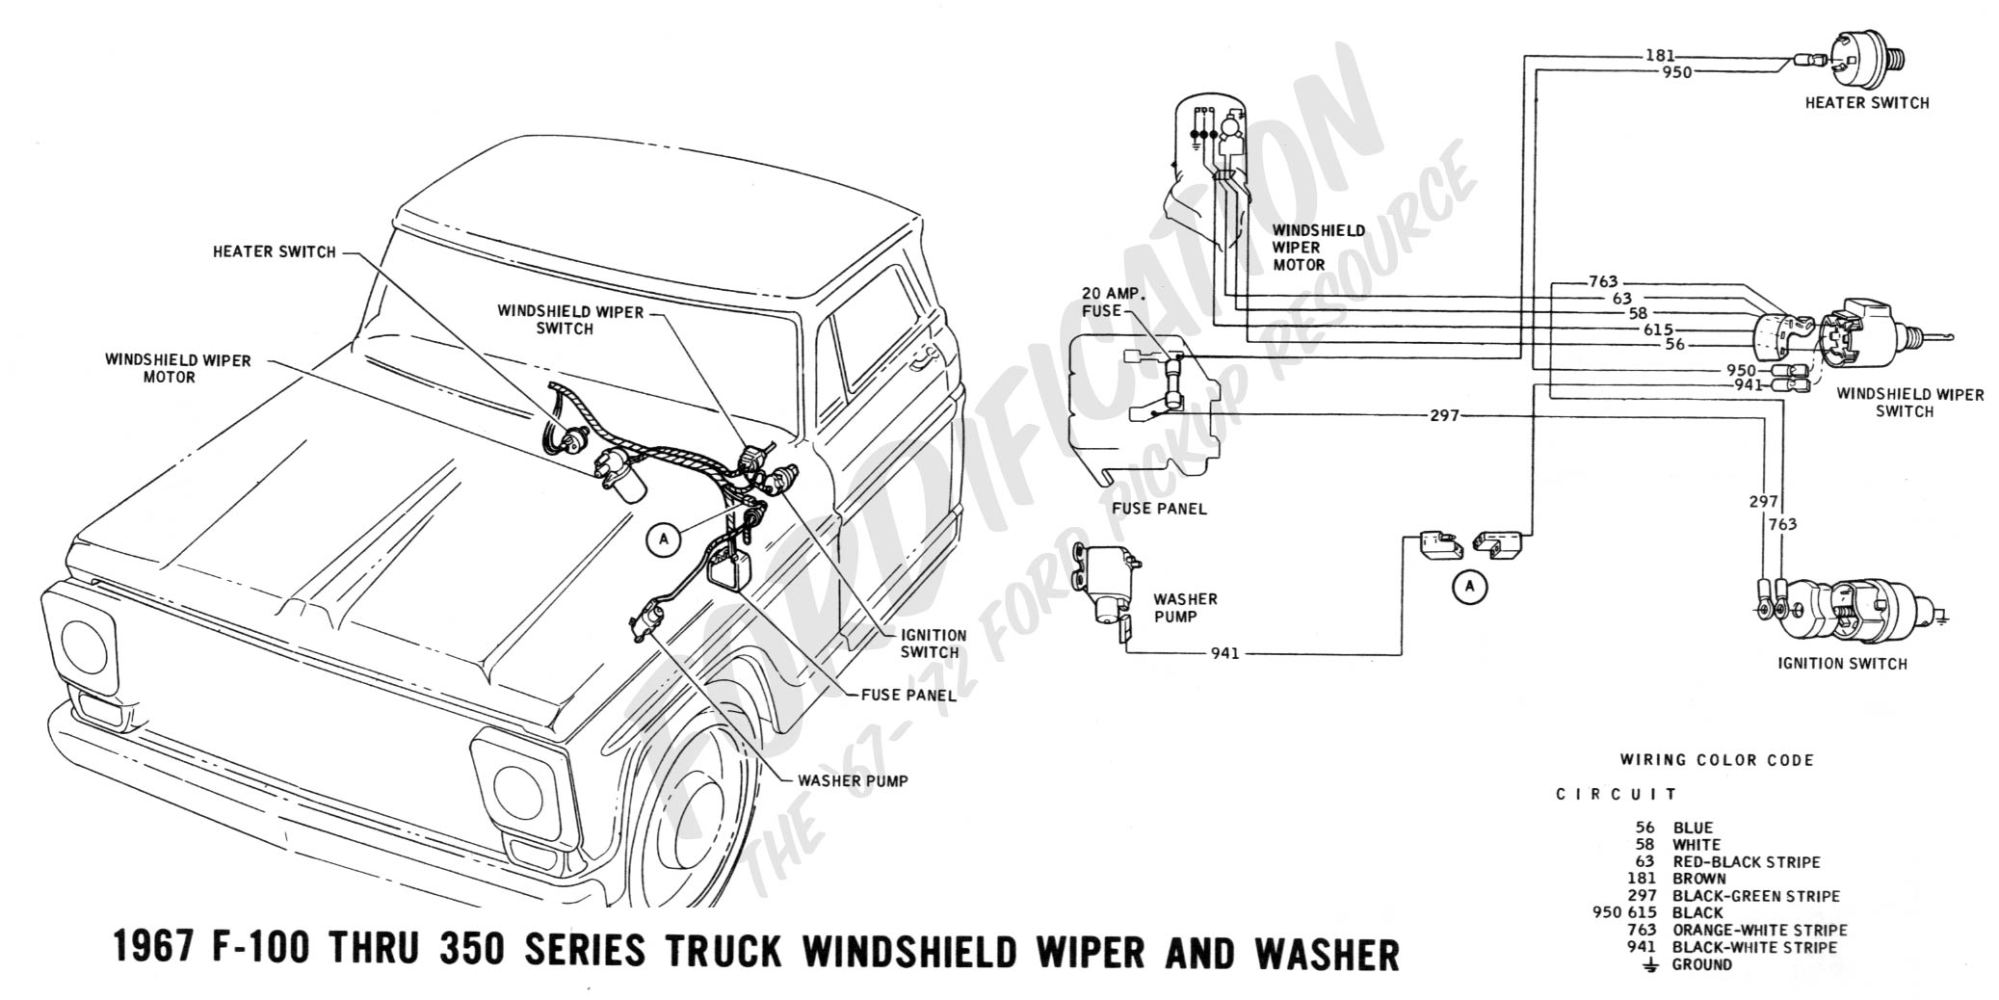 hight resolution of ford truck technical drawings and schematics section h wiring1967 f 100 thru f 350 windshield wiper